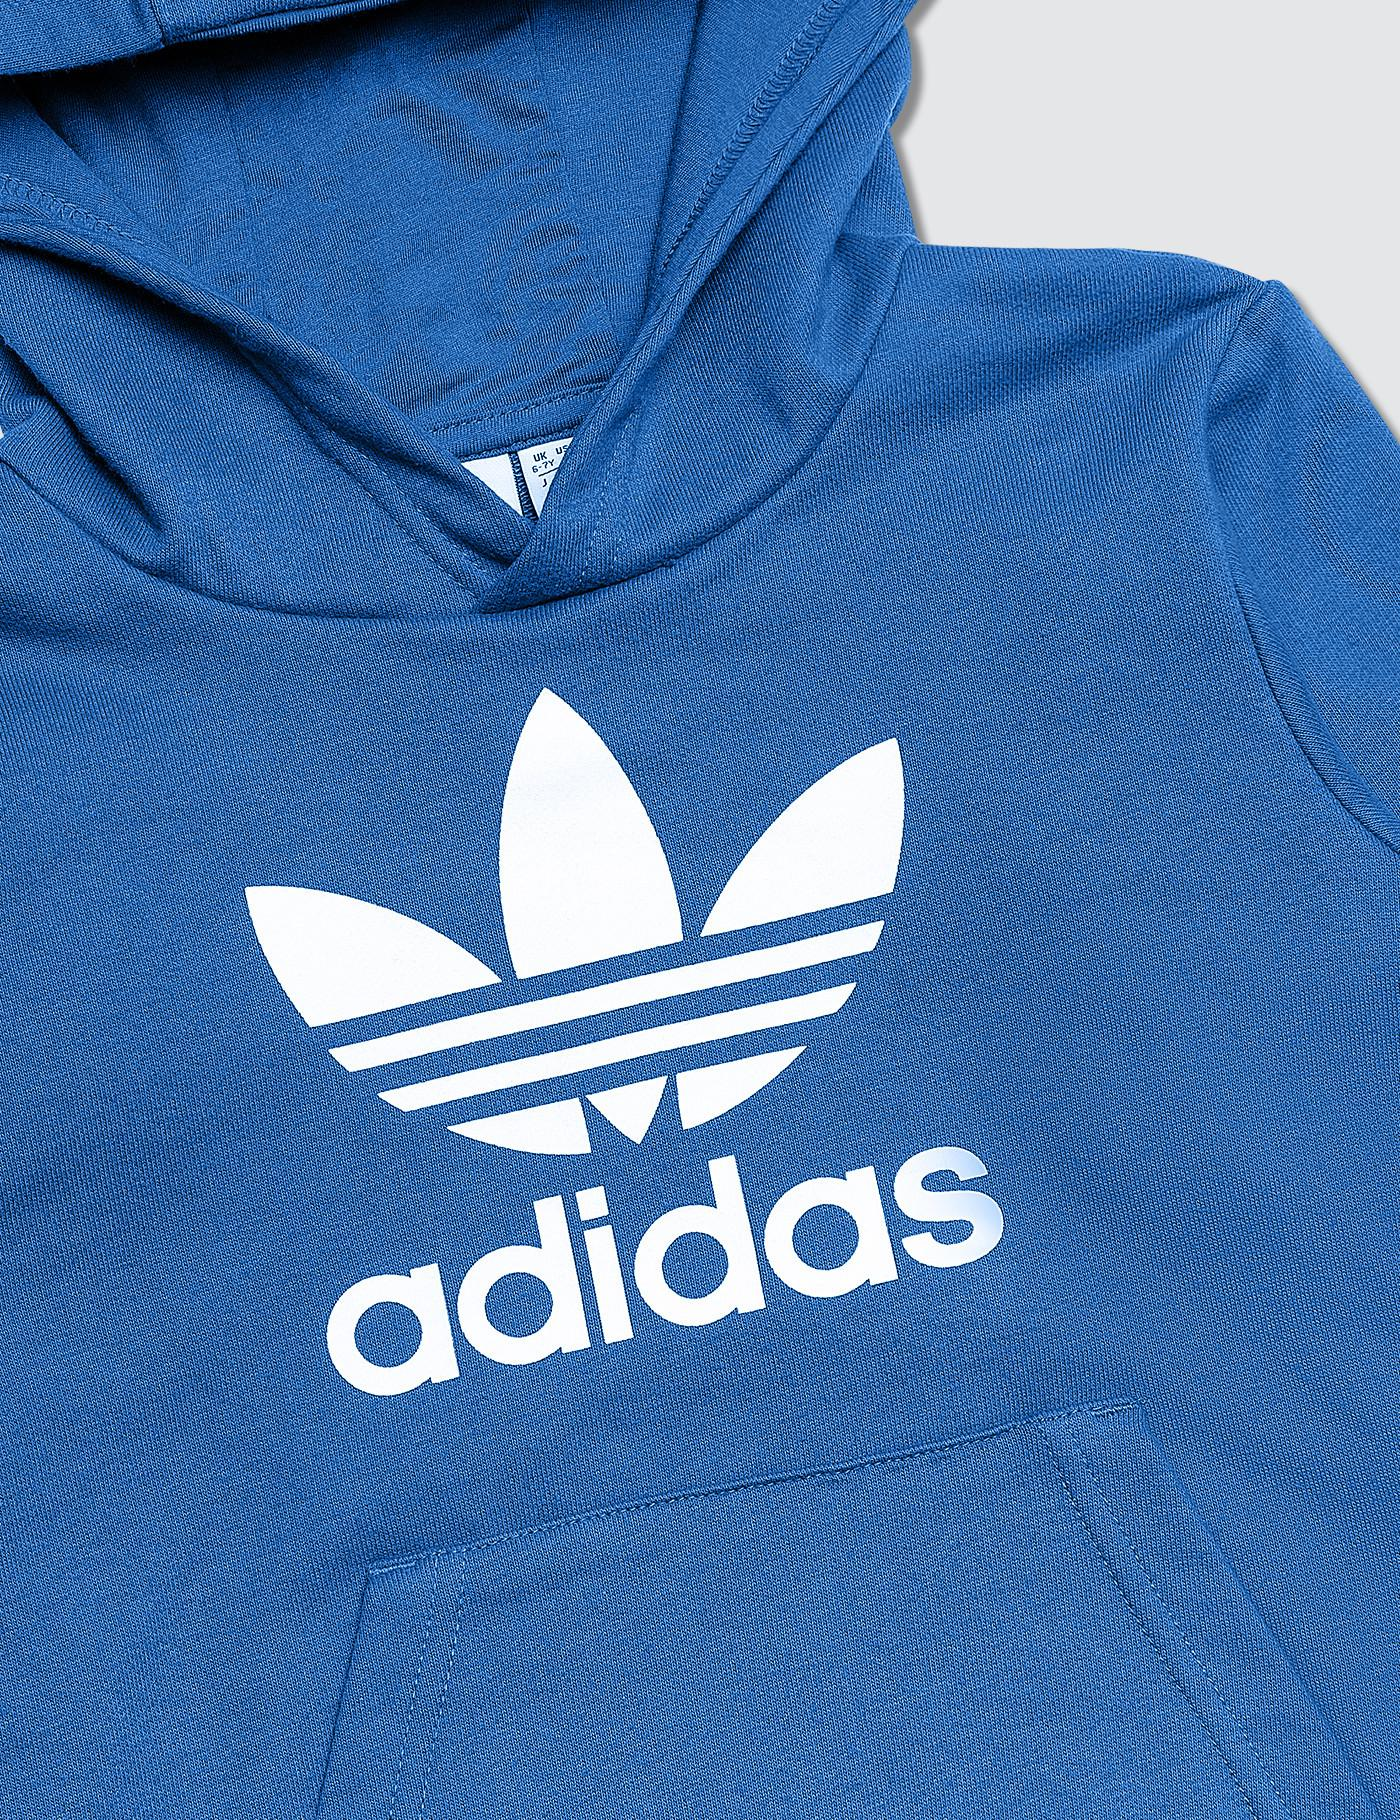 3bf901596c45 Adidas Originals - Blue Trefoil Hoodie And Pants Set - Lyst. View fullscreen